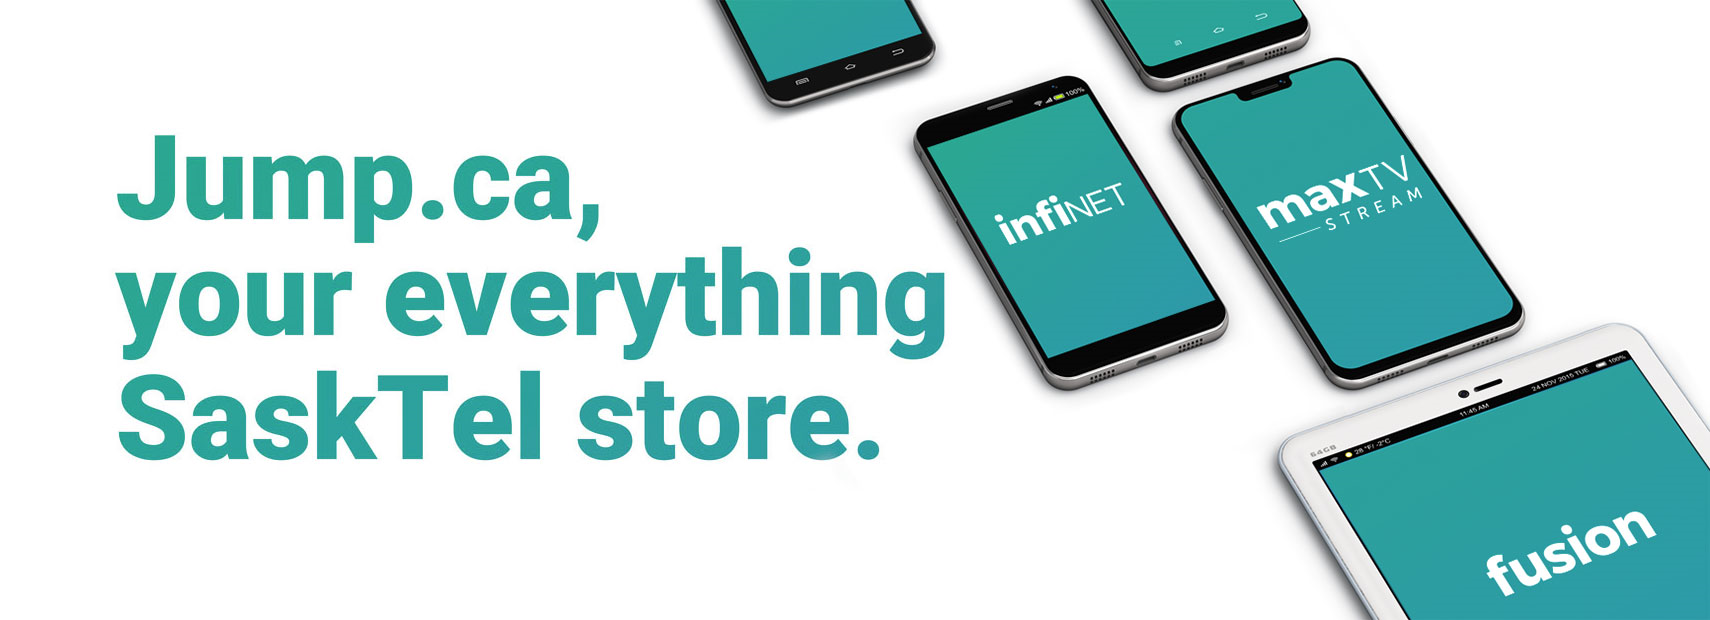 Jump.ca, Your Everything SaskTel Store